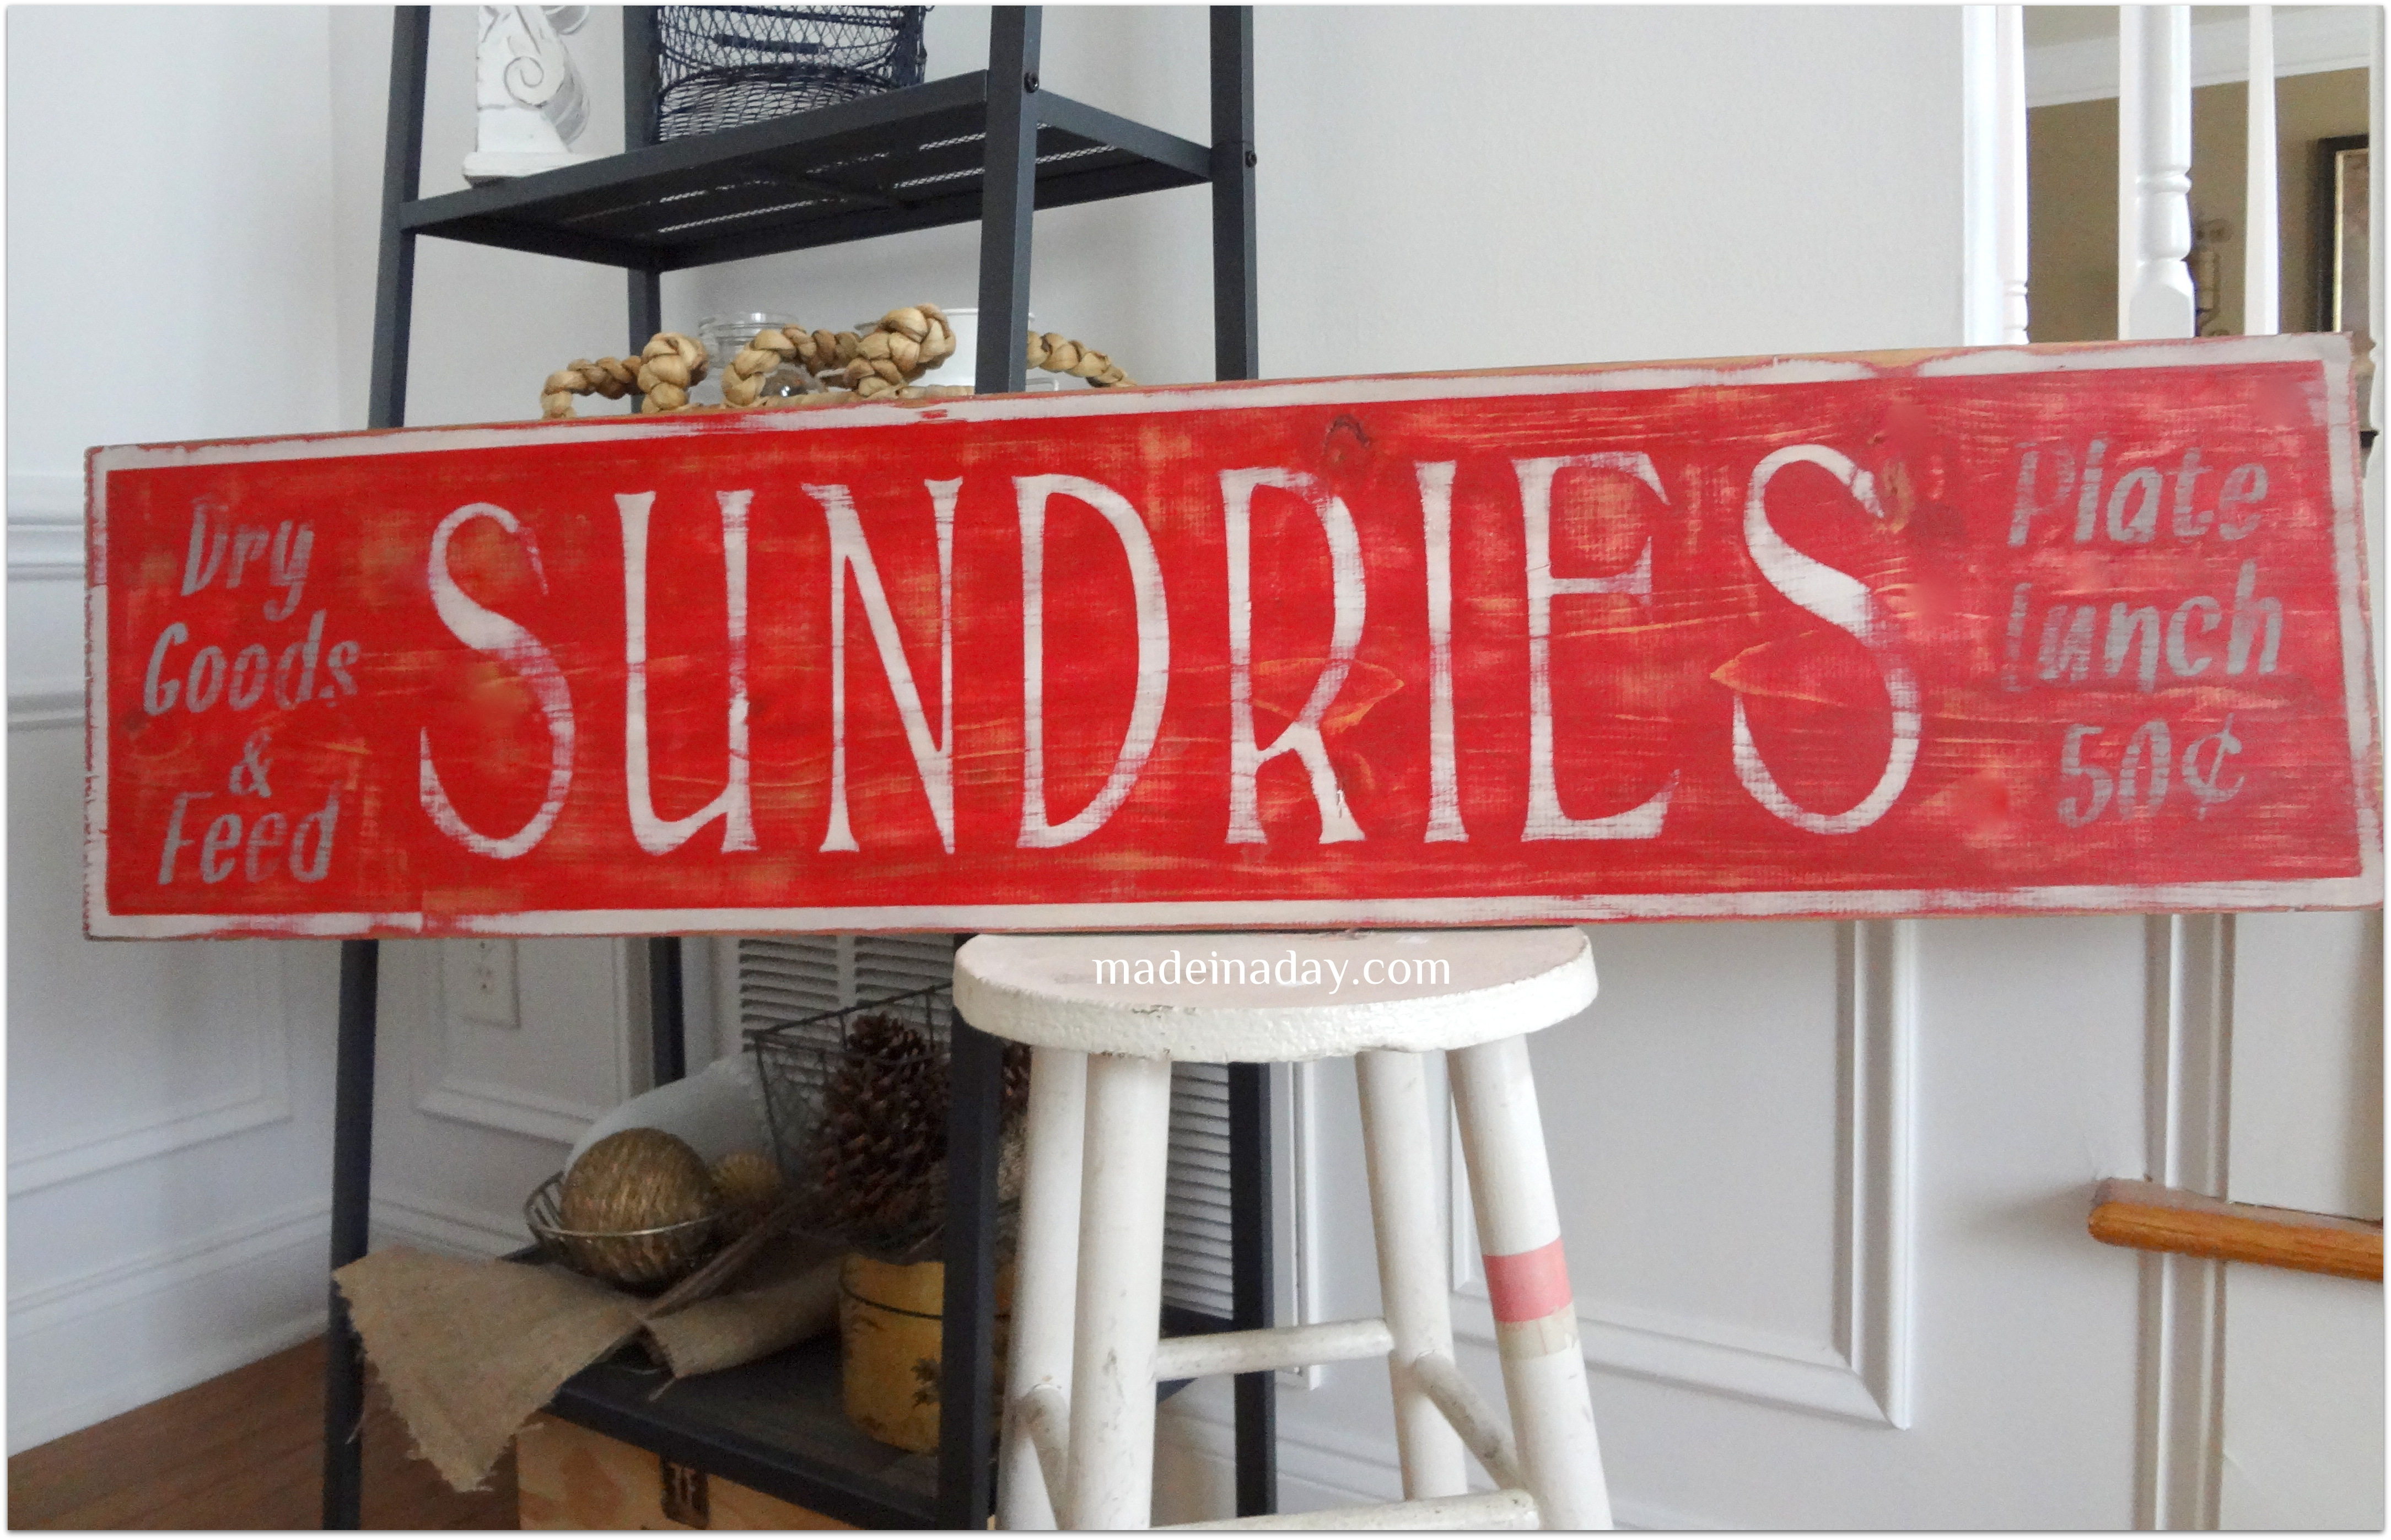 Vintage Sundries Sign | Made in a Day